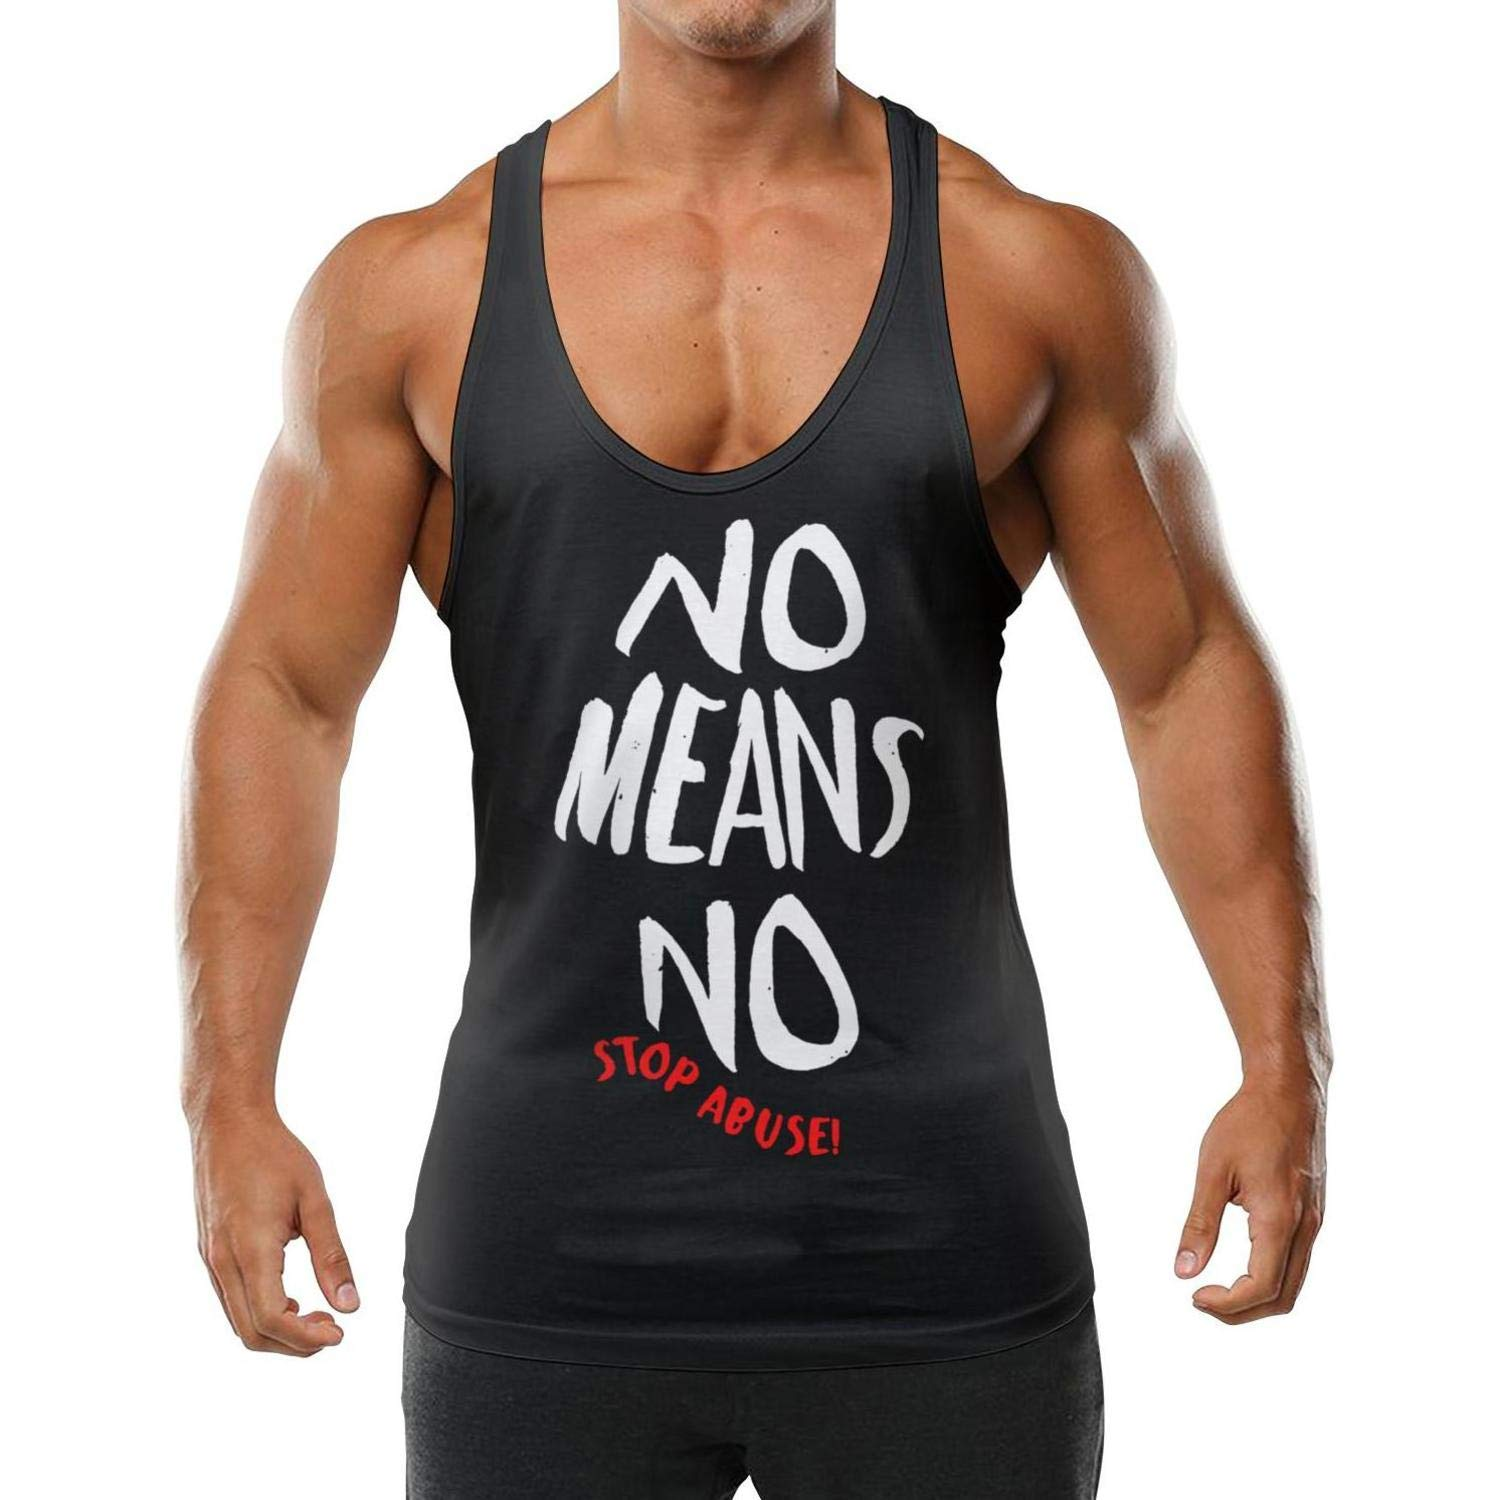 Mens Sleeveless Tank Tops No Means No Feminist Stop Abuse Vest Casual Stringer Waistcoats